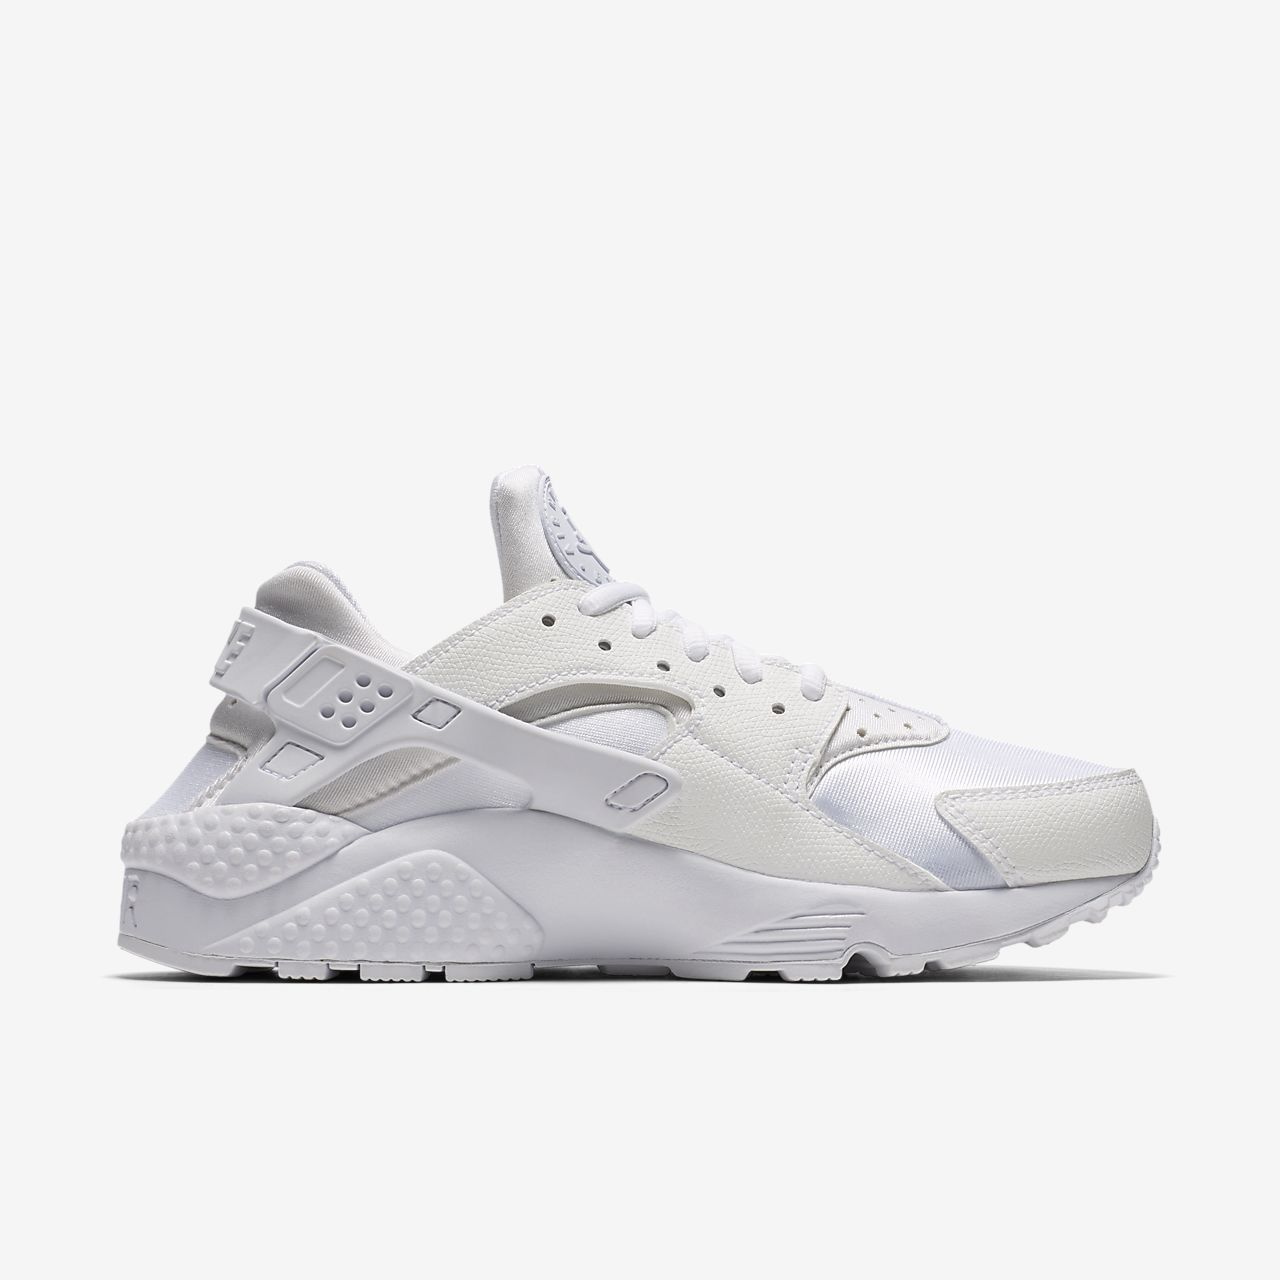 nike huarache black 5.5 nz